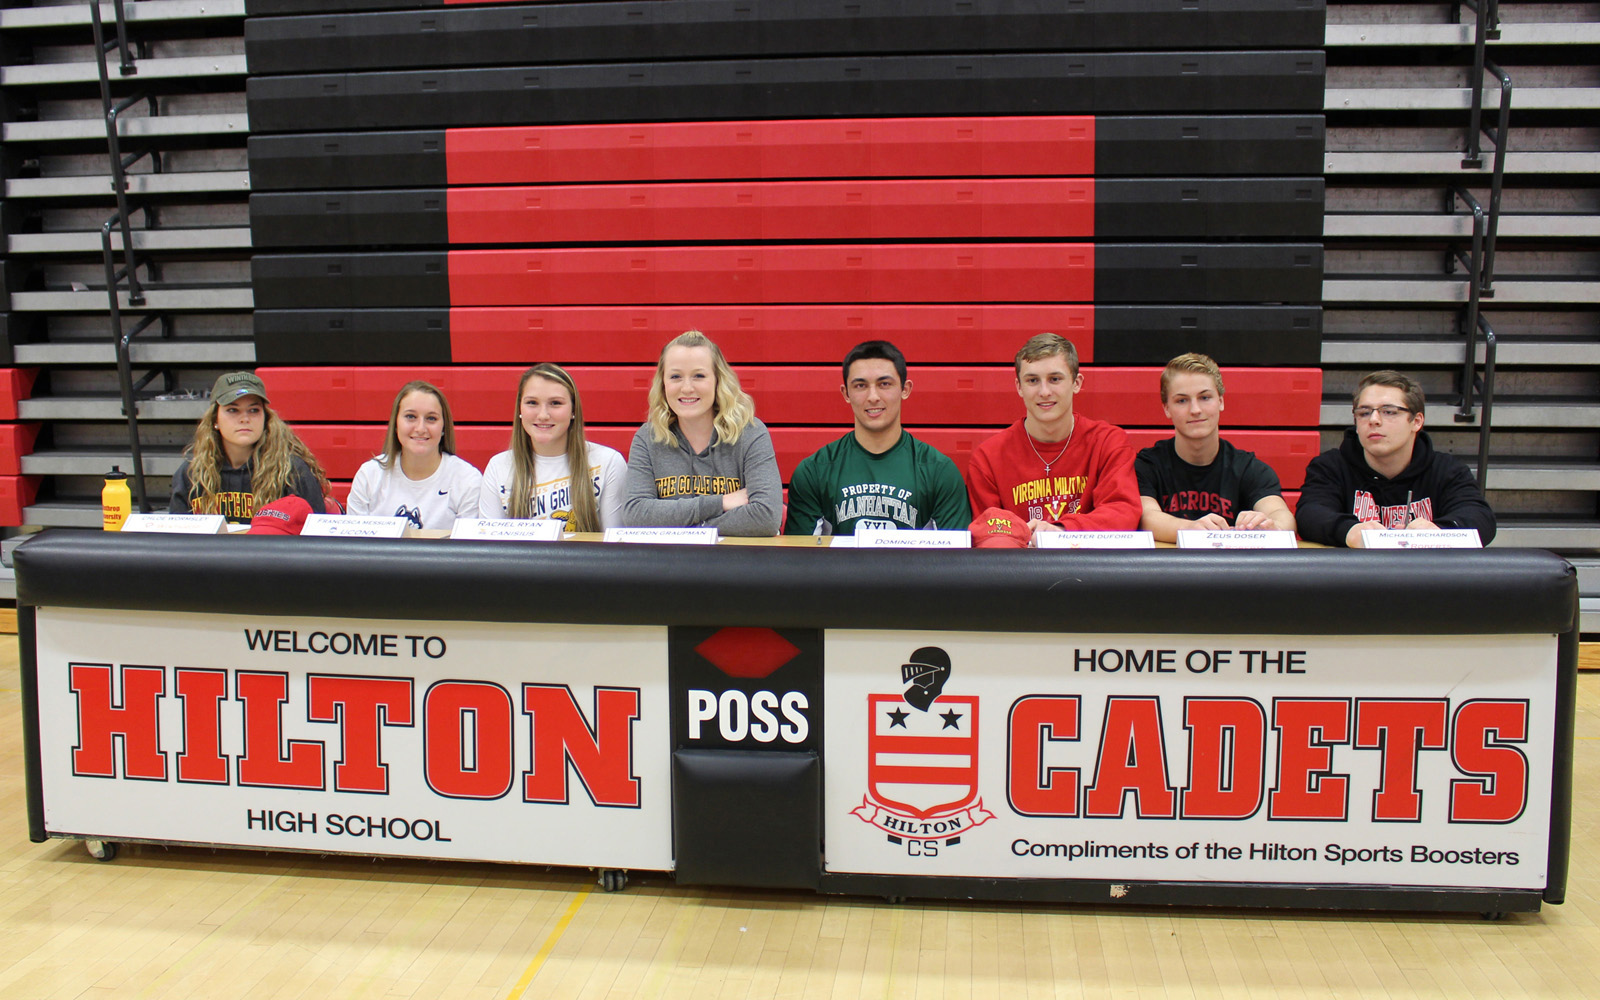 hilton cadets signing